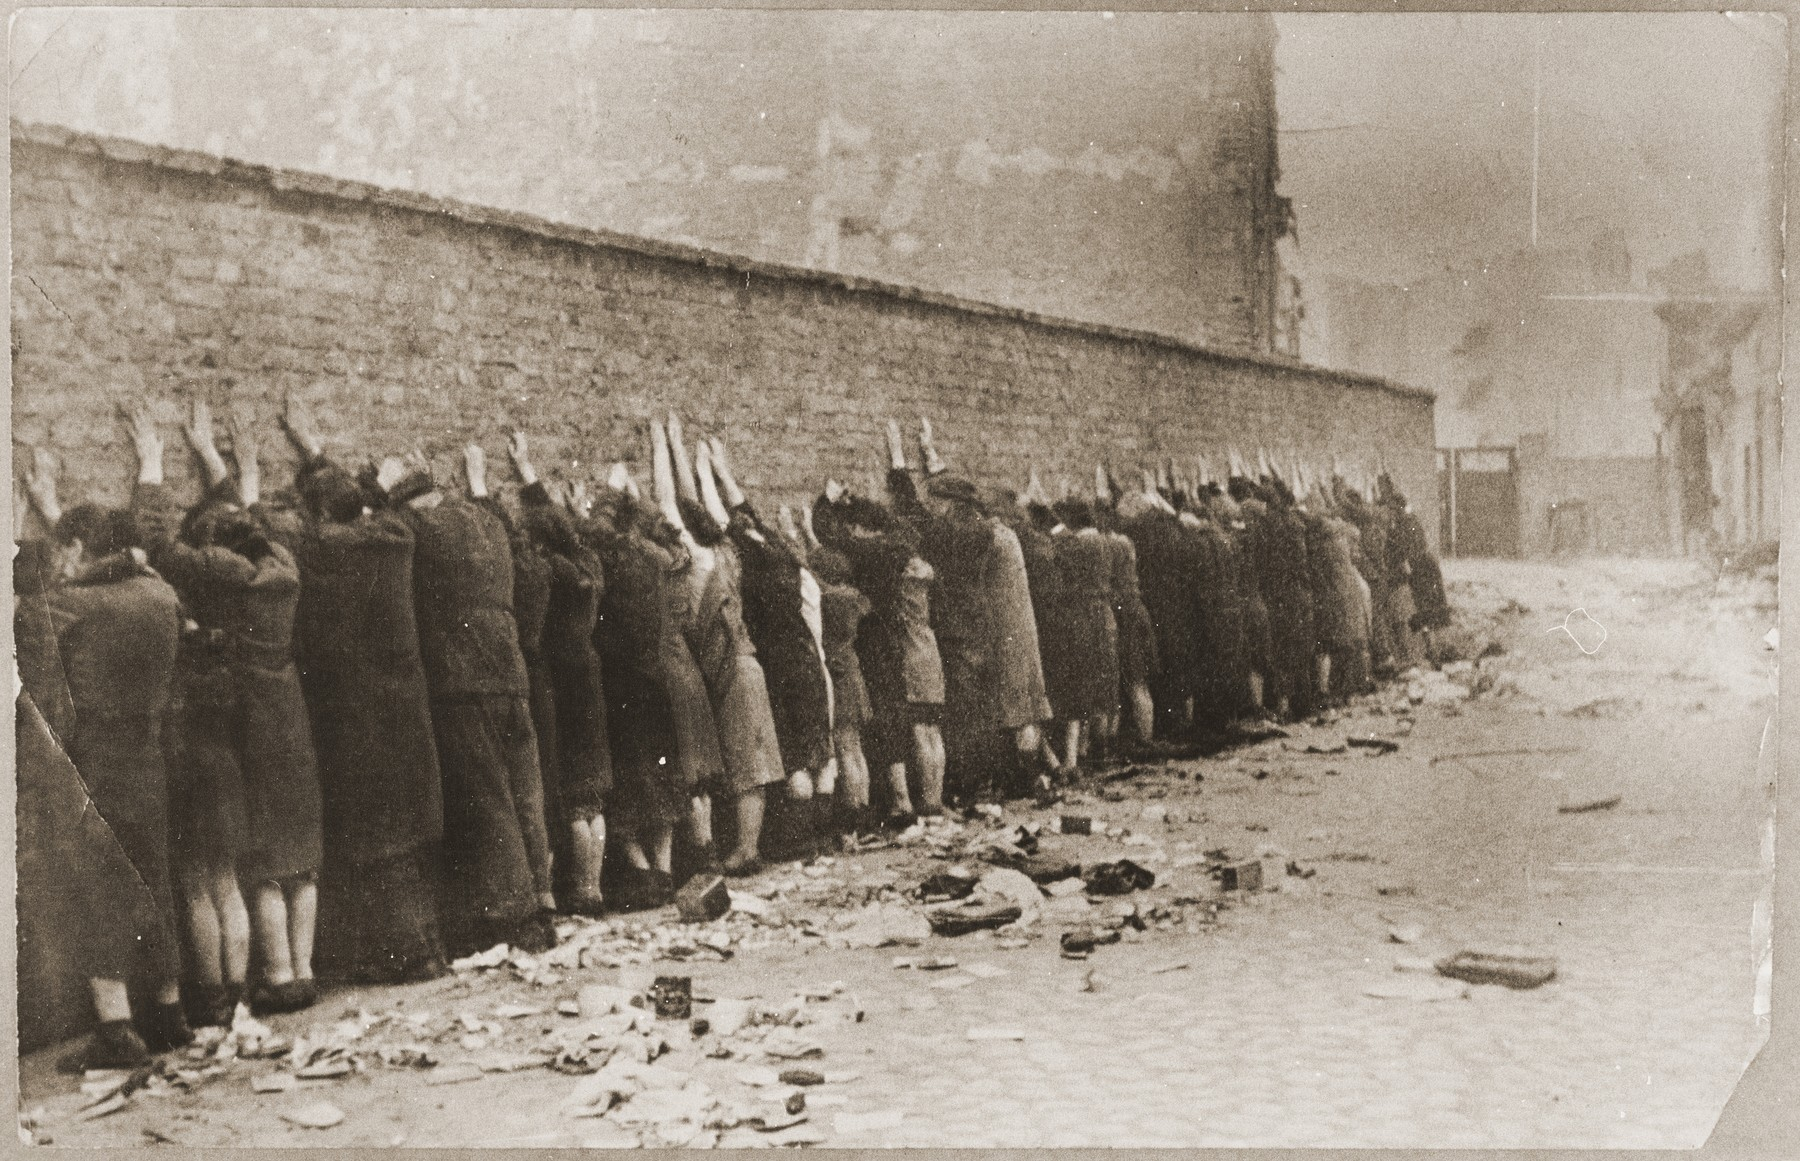 "Jews captured by the SS during the suppression of the Warsaw ghetto uprising are lined up against a wall prior to being searched for weapons.  The original German caption reads: ""Before the search.""   Original caption from donated photograph reads:  ""The following pictures are copies of the book conaning the report of the German commander who was responsible for cleaning out that ghetto in Warsaw, Poland.  This report, in the form of a leather bound book, was presented as evidence by the U.S. prosecution, Maj. Frank Walsh, at the international tribunal trials at Nurnberg, Germany."""